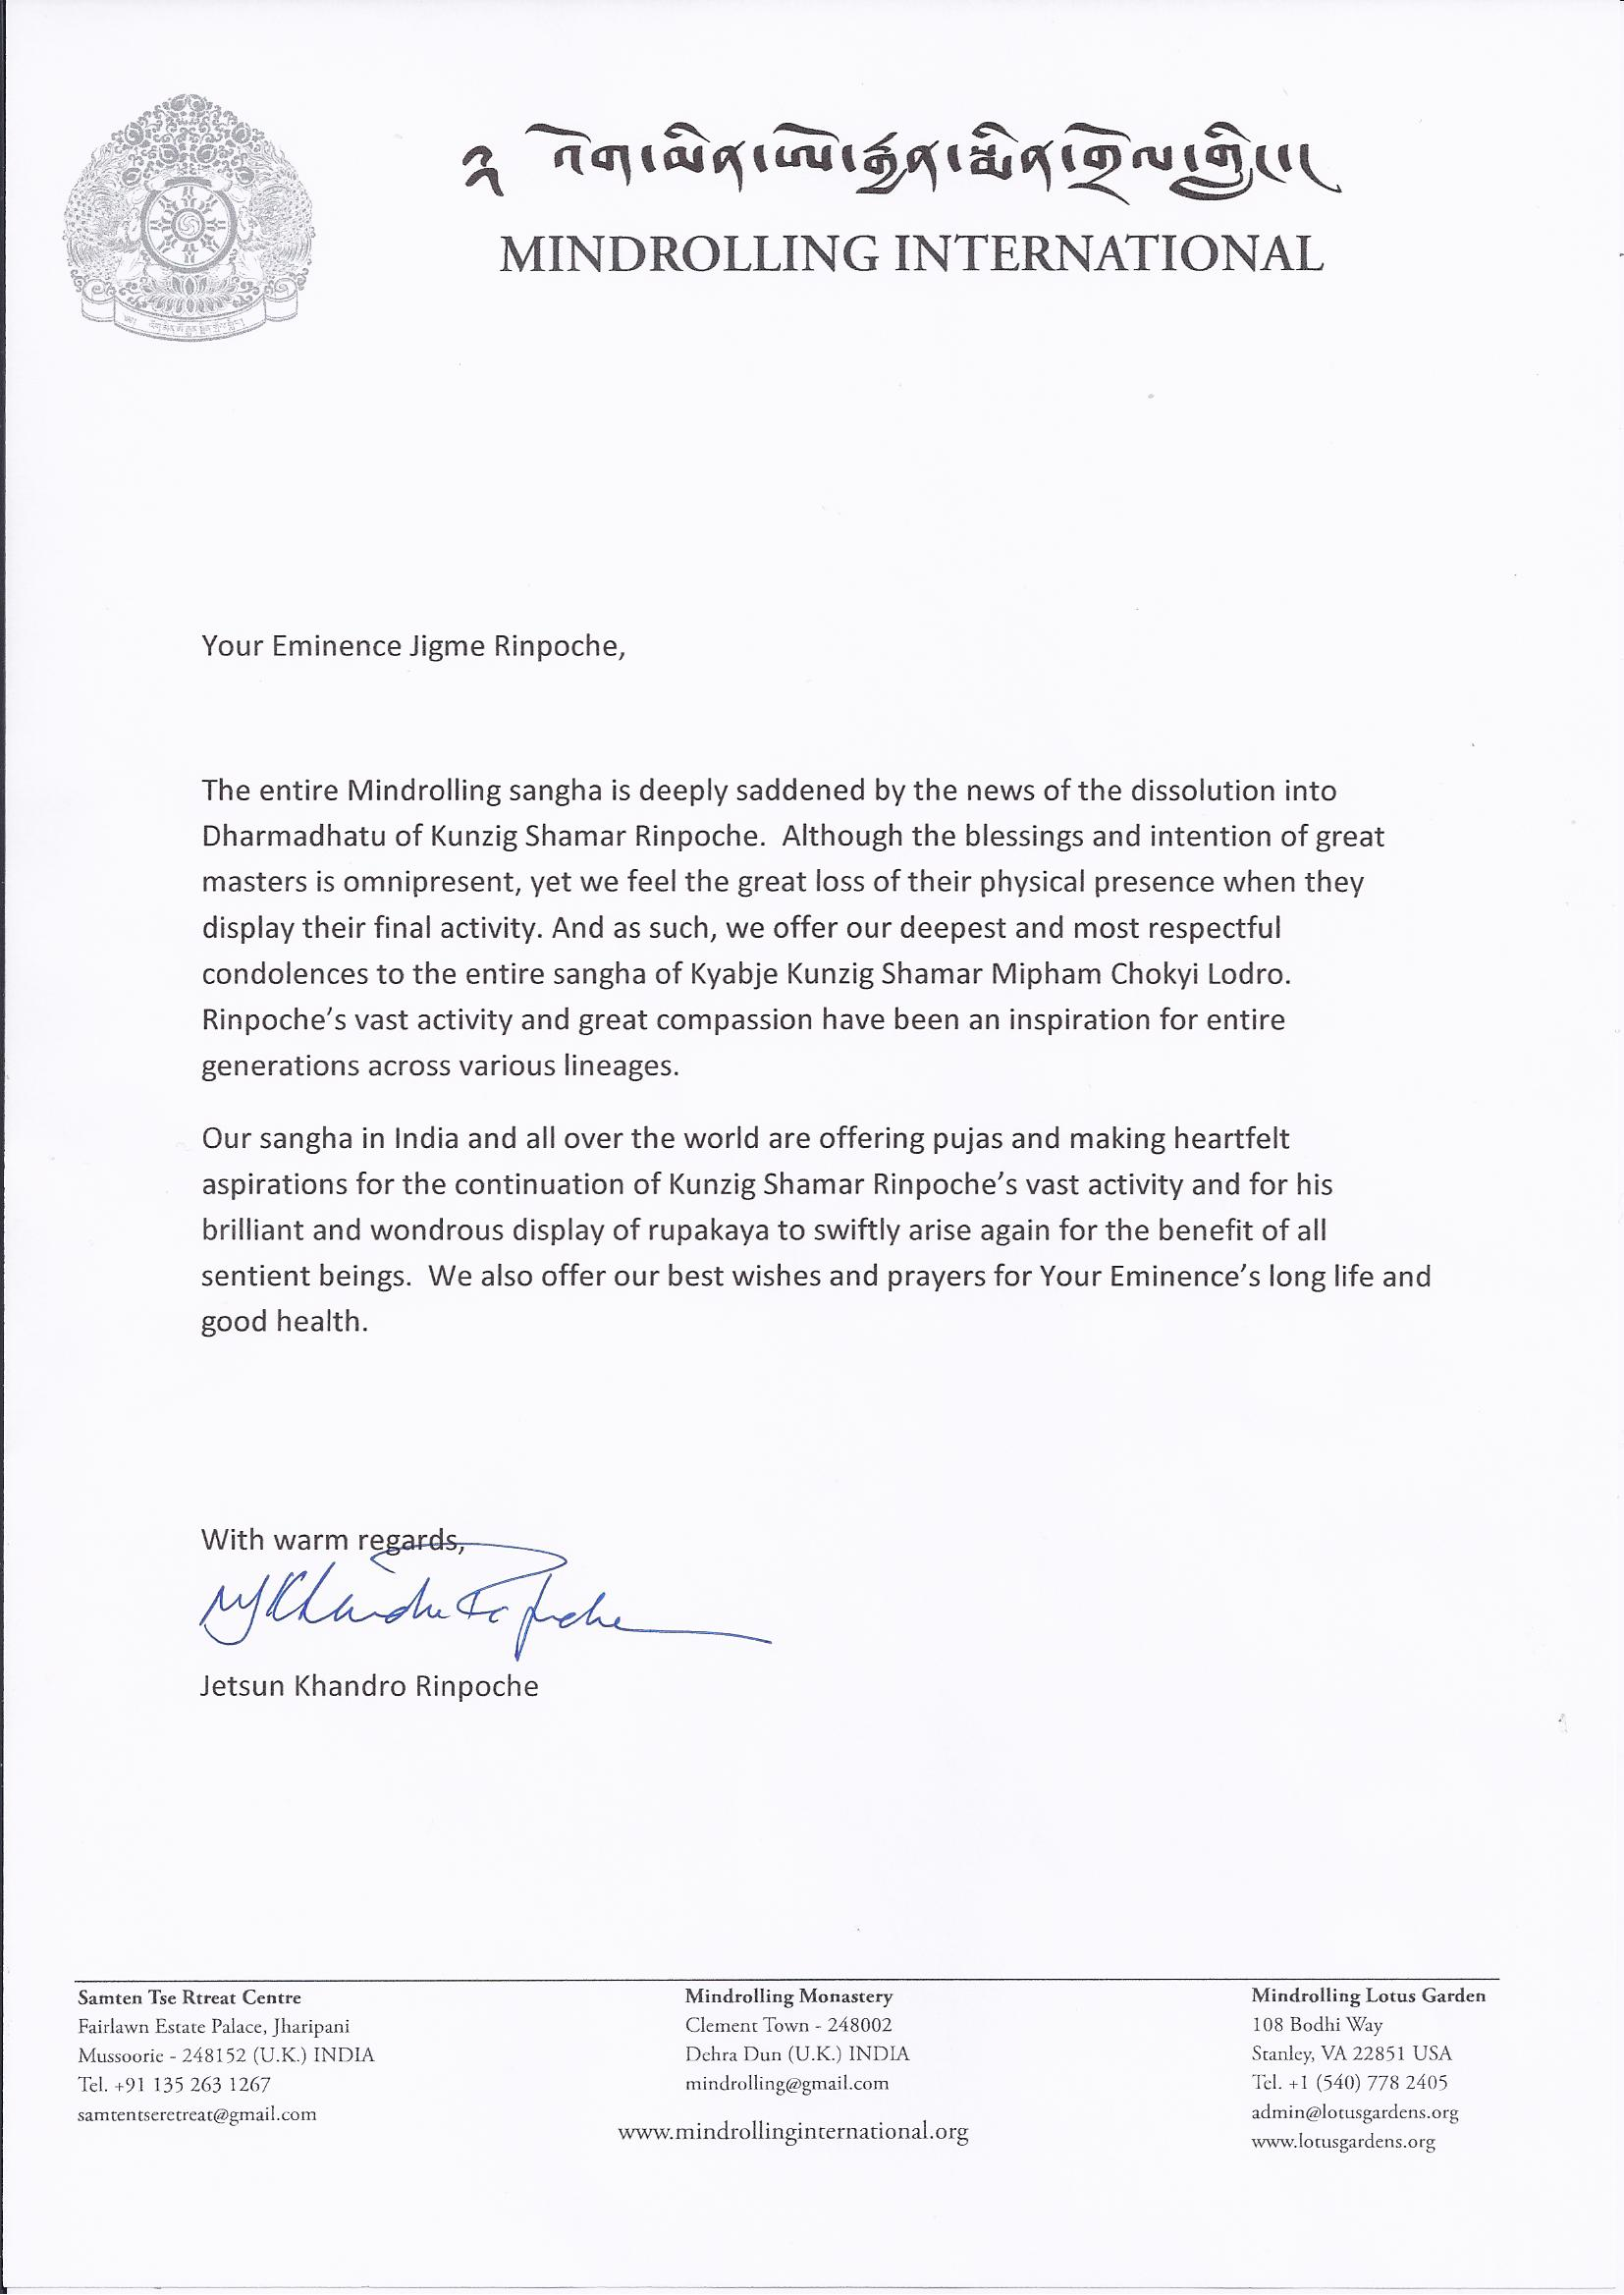 Condolences The Shamarpa – Formal Condolences Letter